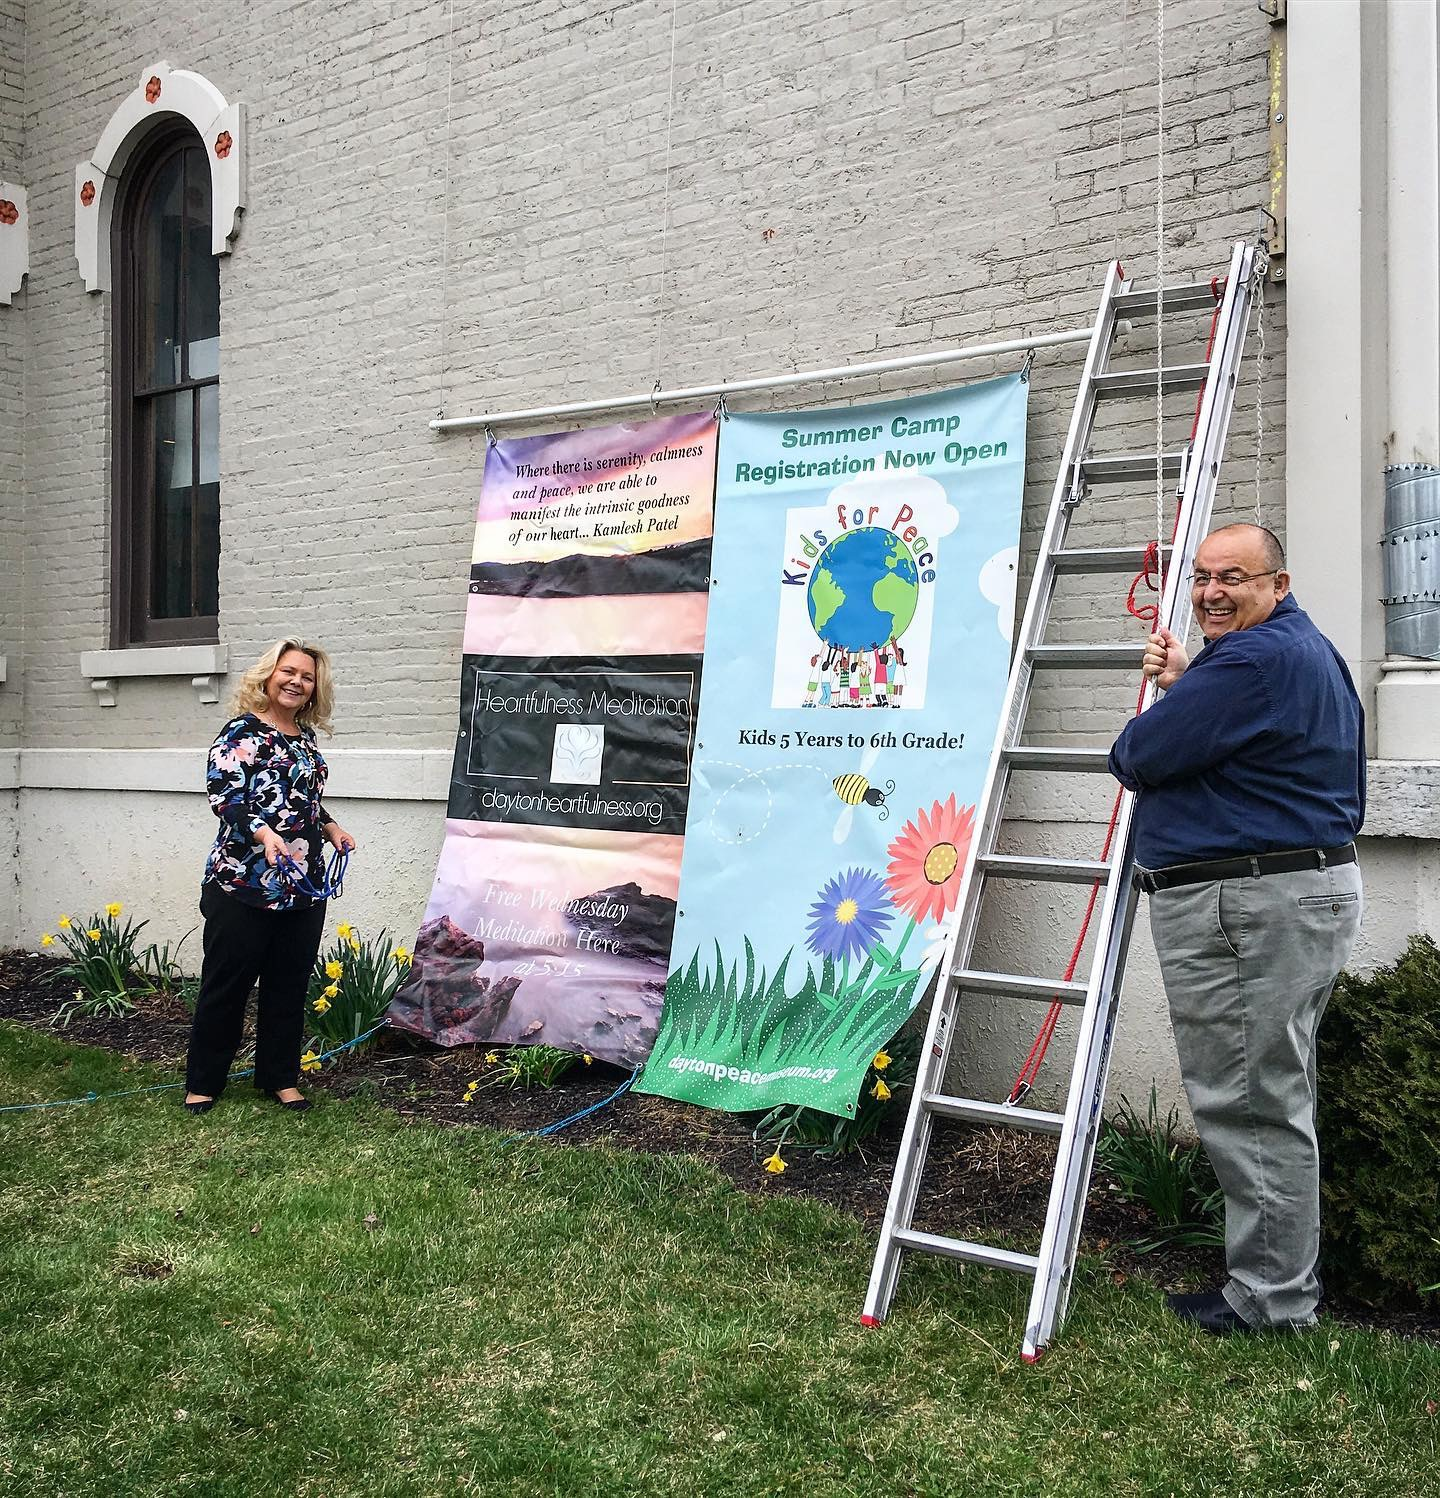 Dayton Convention and Visitor Center  employees Sonja and Iggy get roped into helping hoist banners on the side of the Museum one recent and windy day!